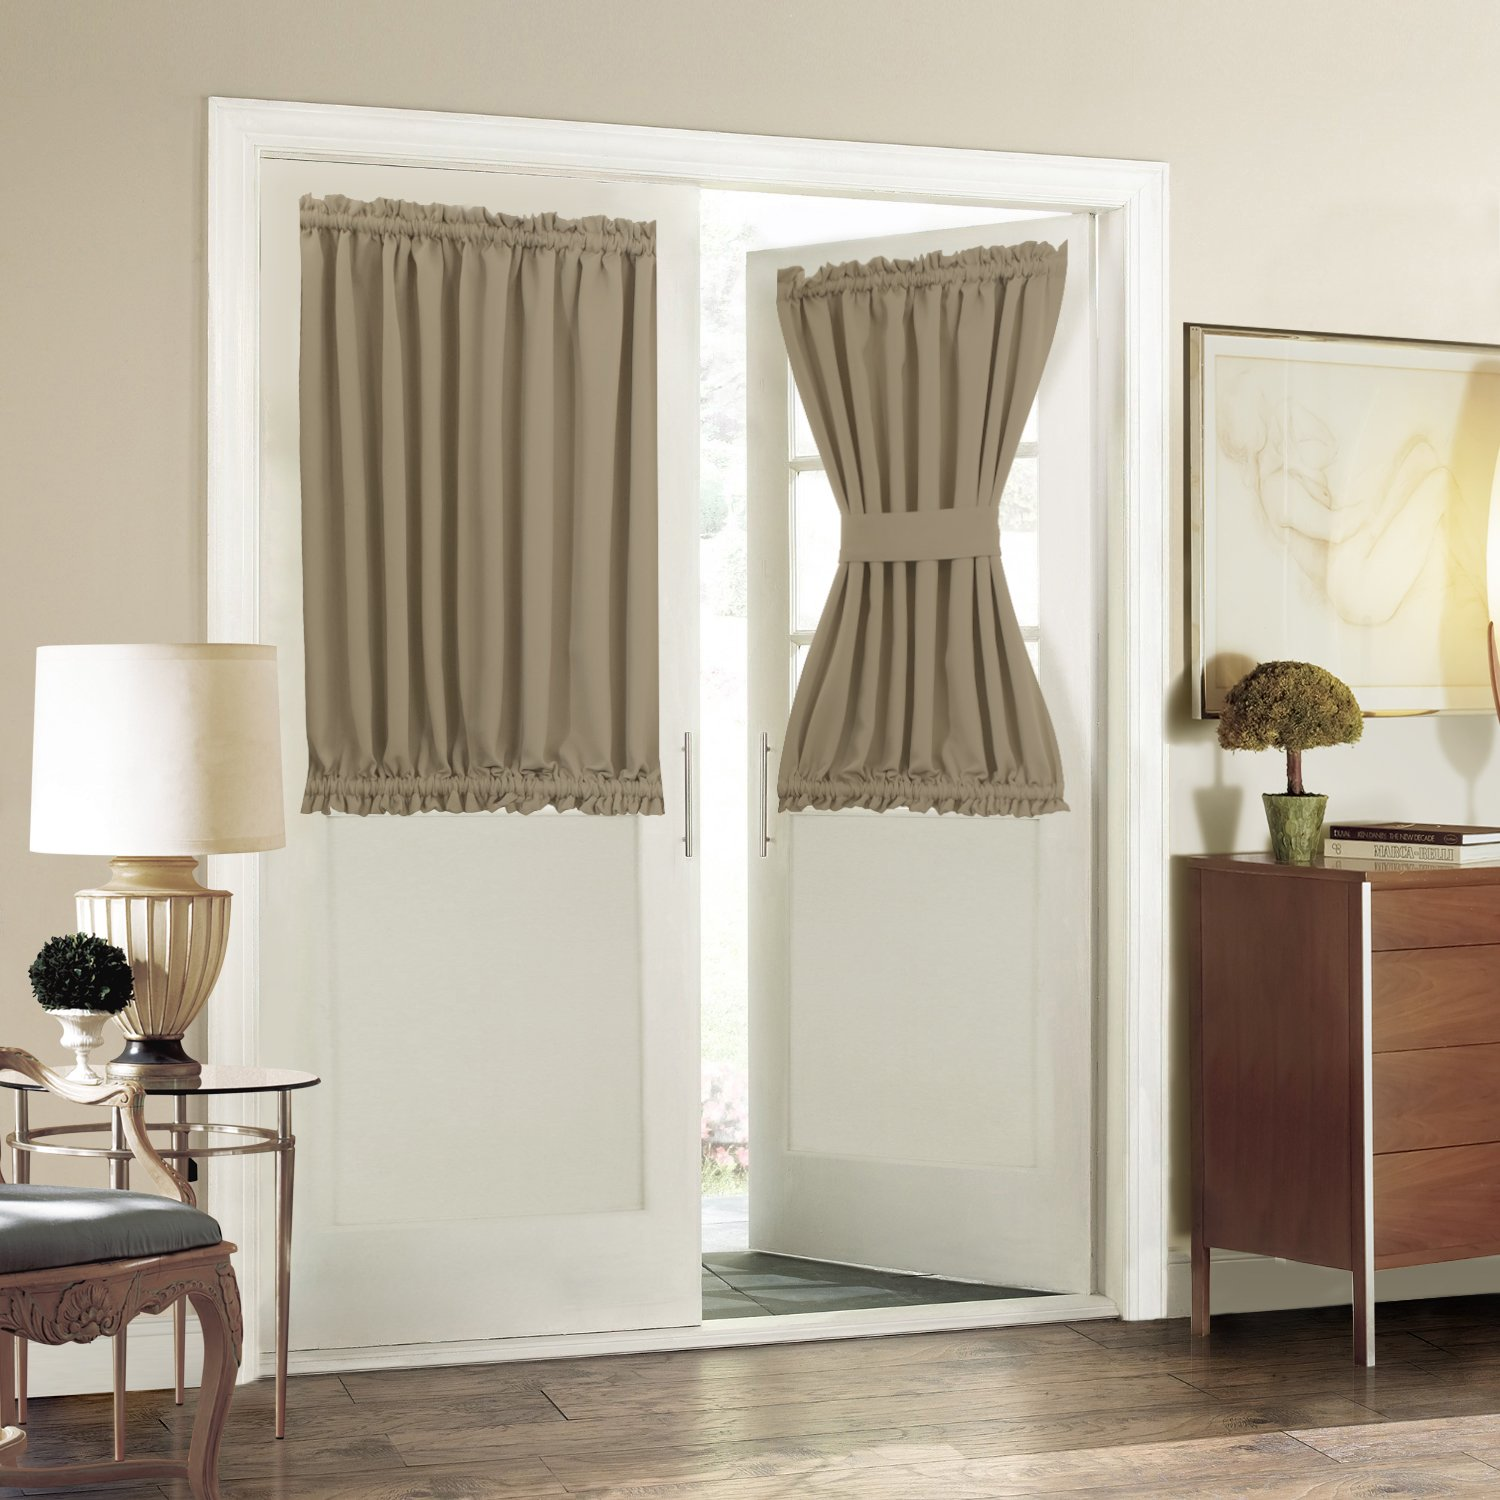 aquazolax plain blackout curtains thermal insulated for